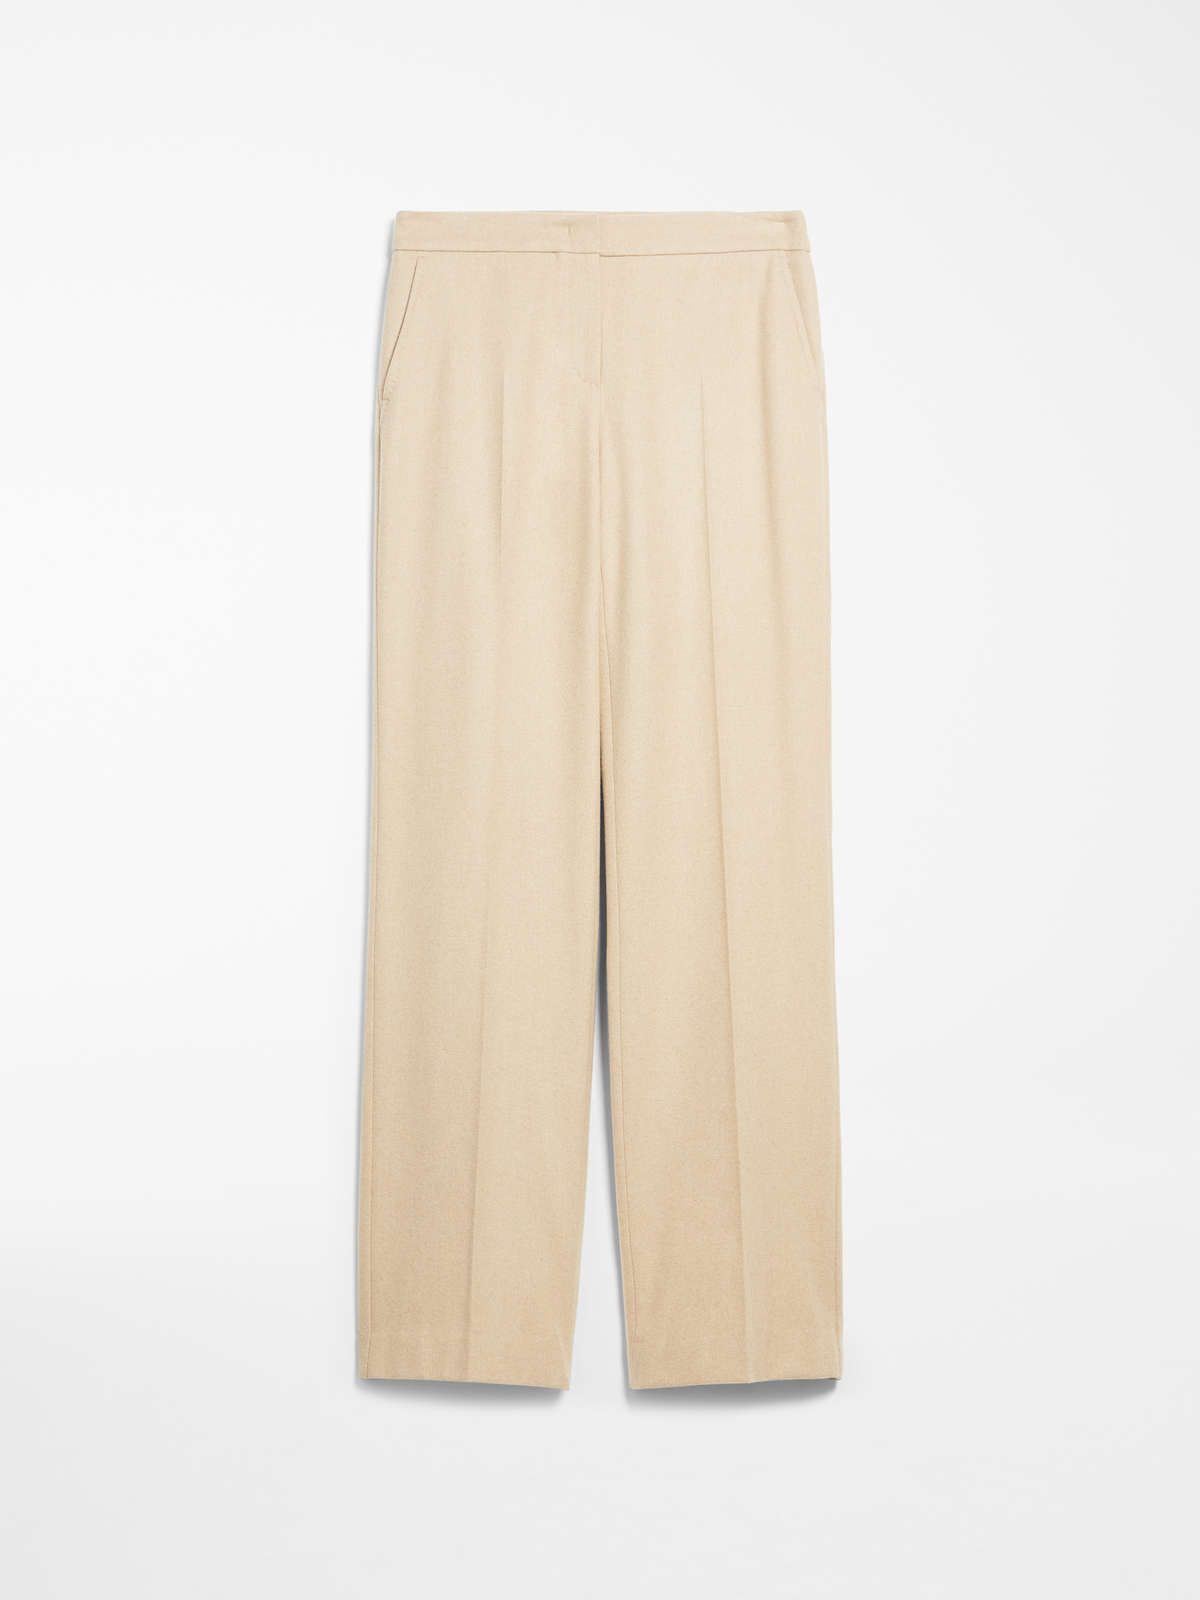 Camel And Cashmere Trousers by Max Mara